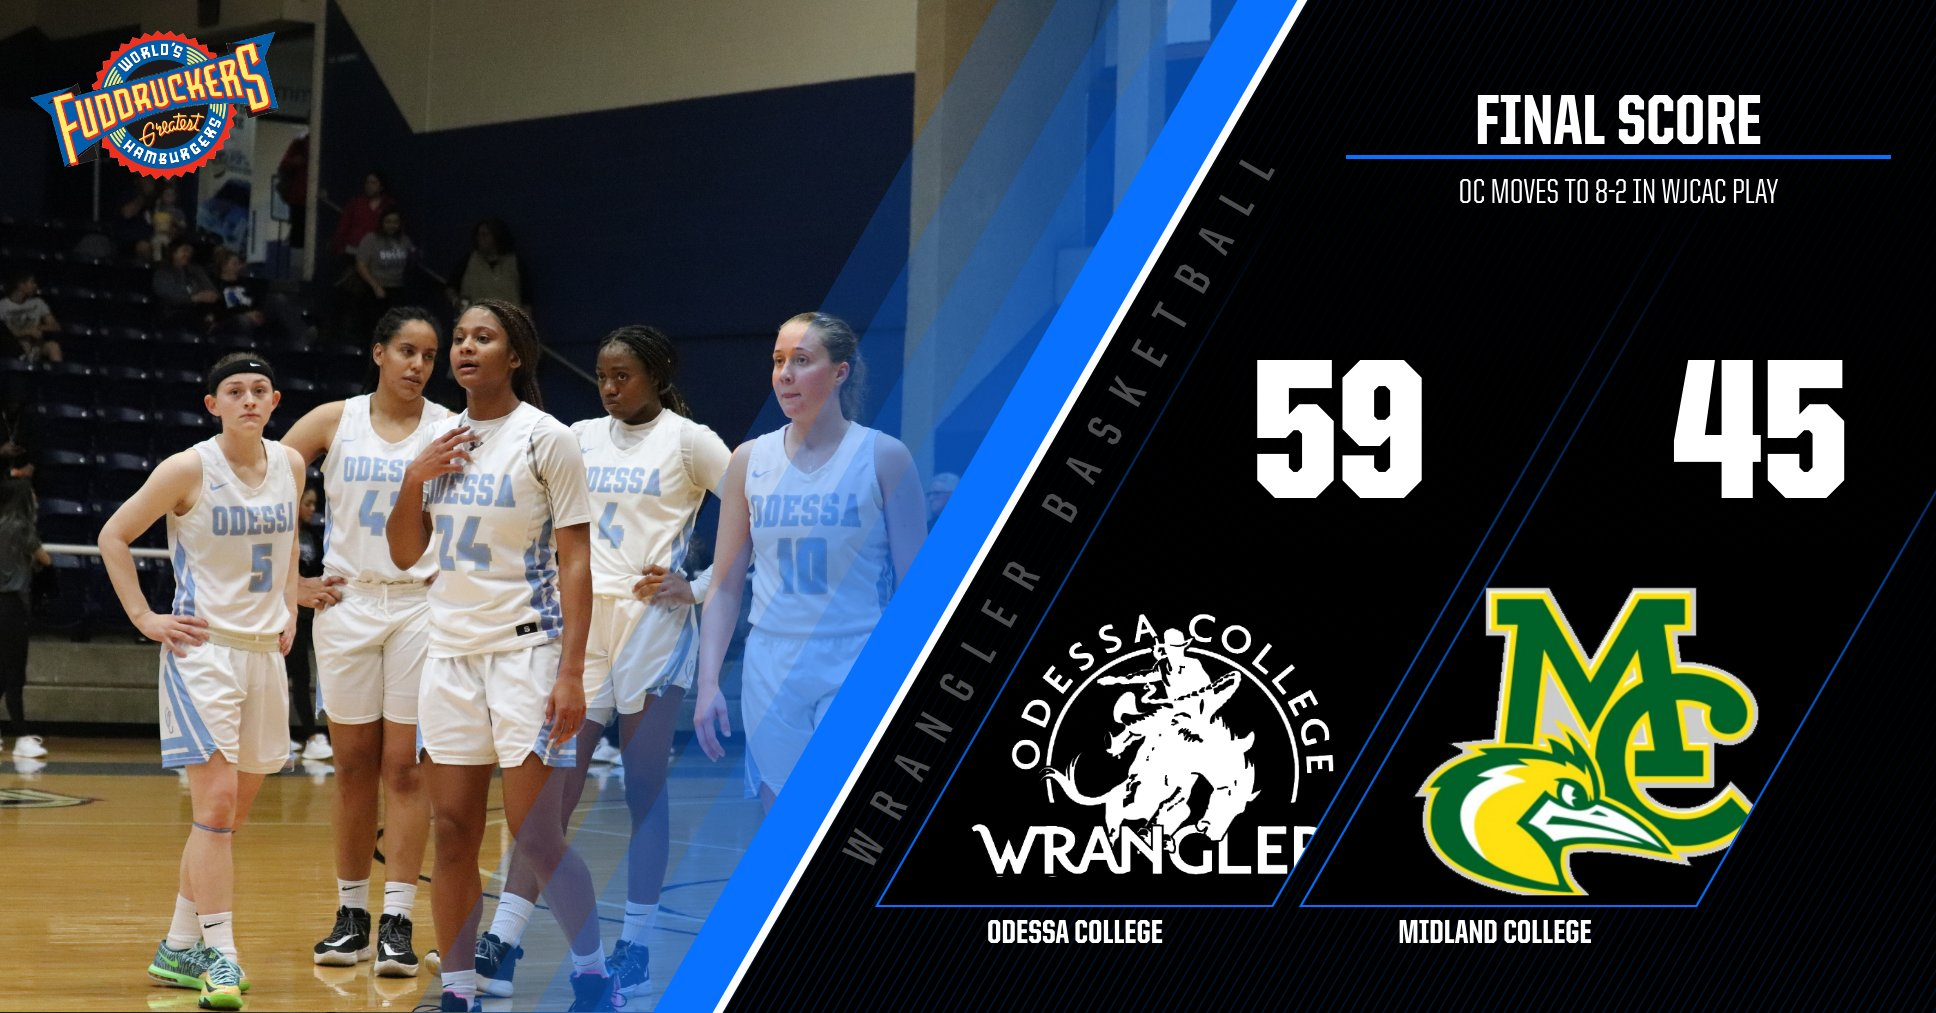 #17 Wrangler Women take down #18 Midland College 59-45